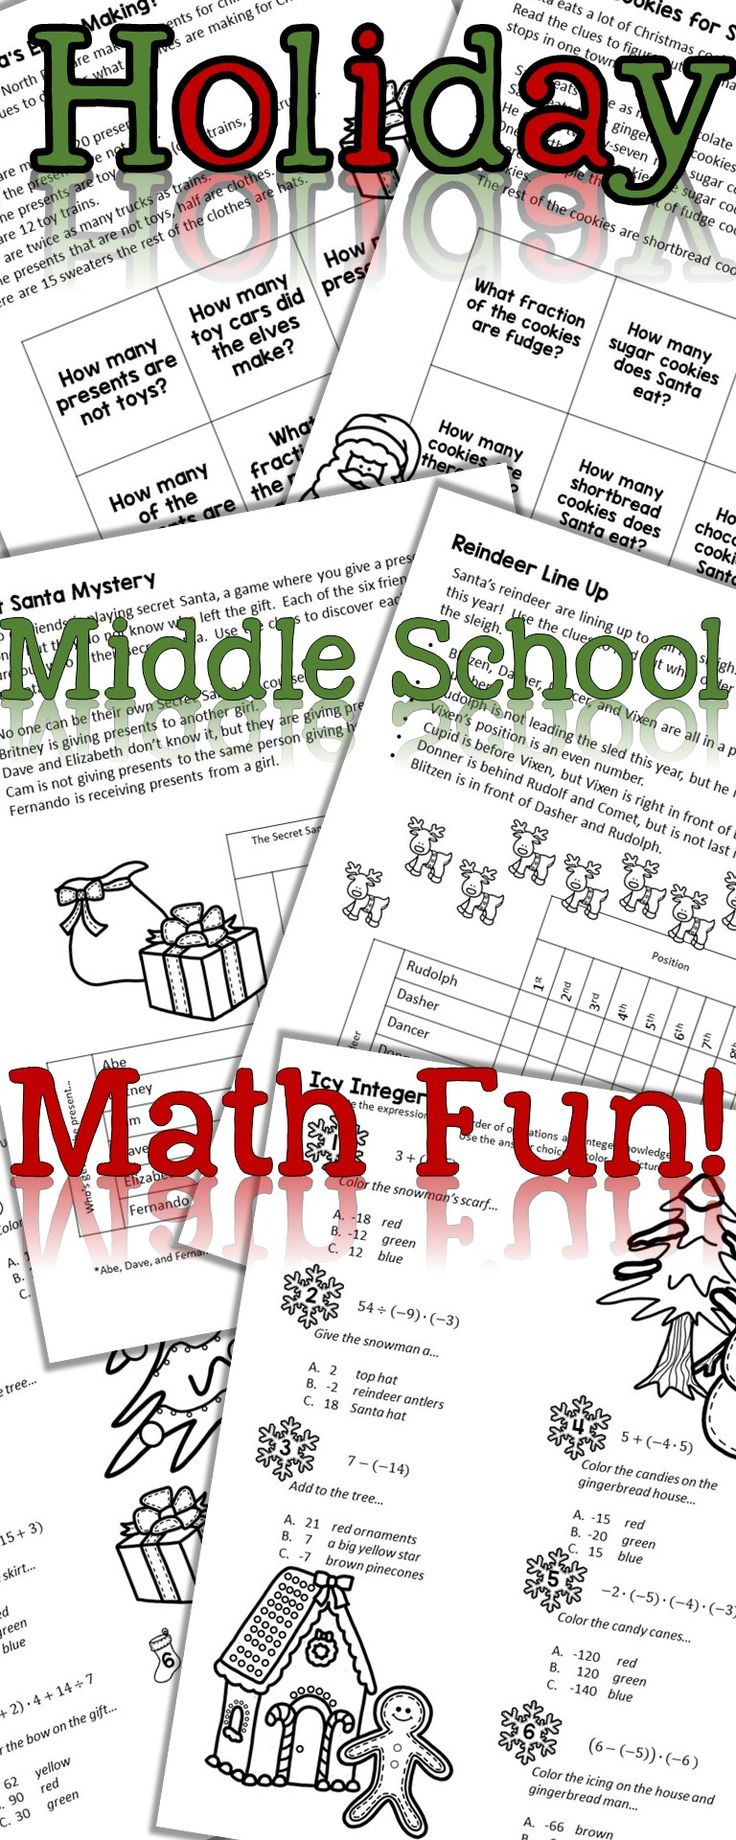 Christmas math puzzles | No prep | Middle school math | Holiday math activities